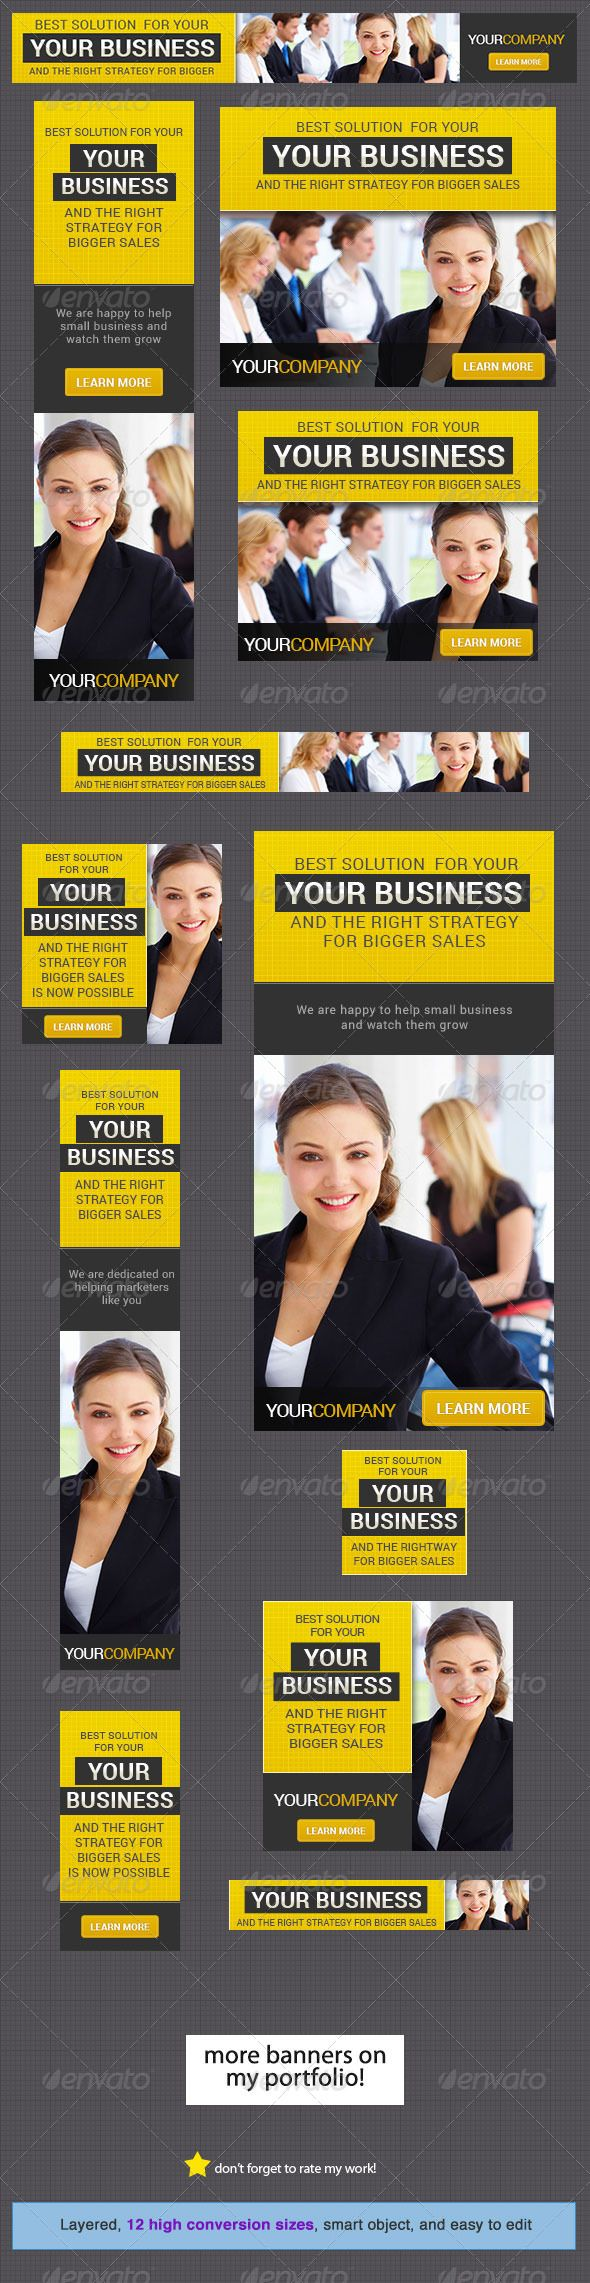 Corporate Banner Design Template 7 - Banners & Ads Web Template PSD. Download here: http://graphicriver.net/item/corporate-banner-design-template-7/4445877?s_rank=84&ref=yinkira